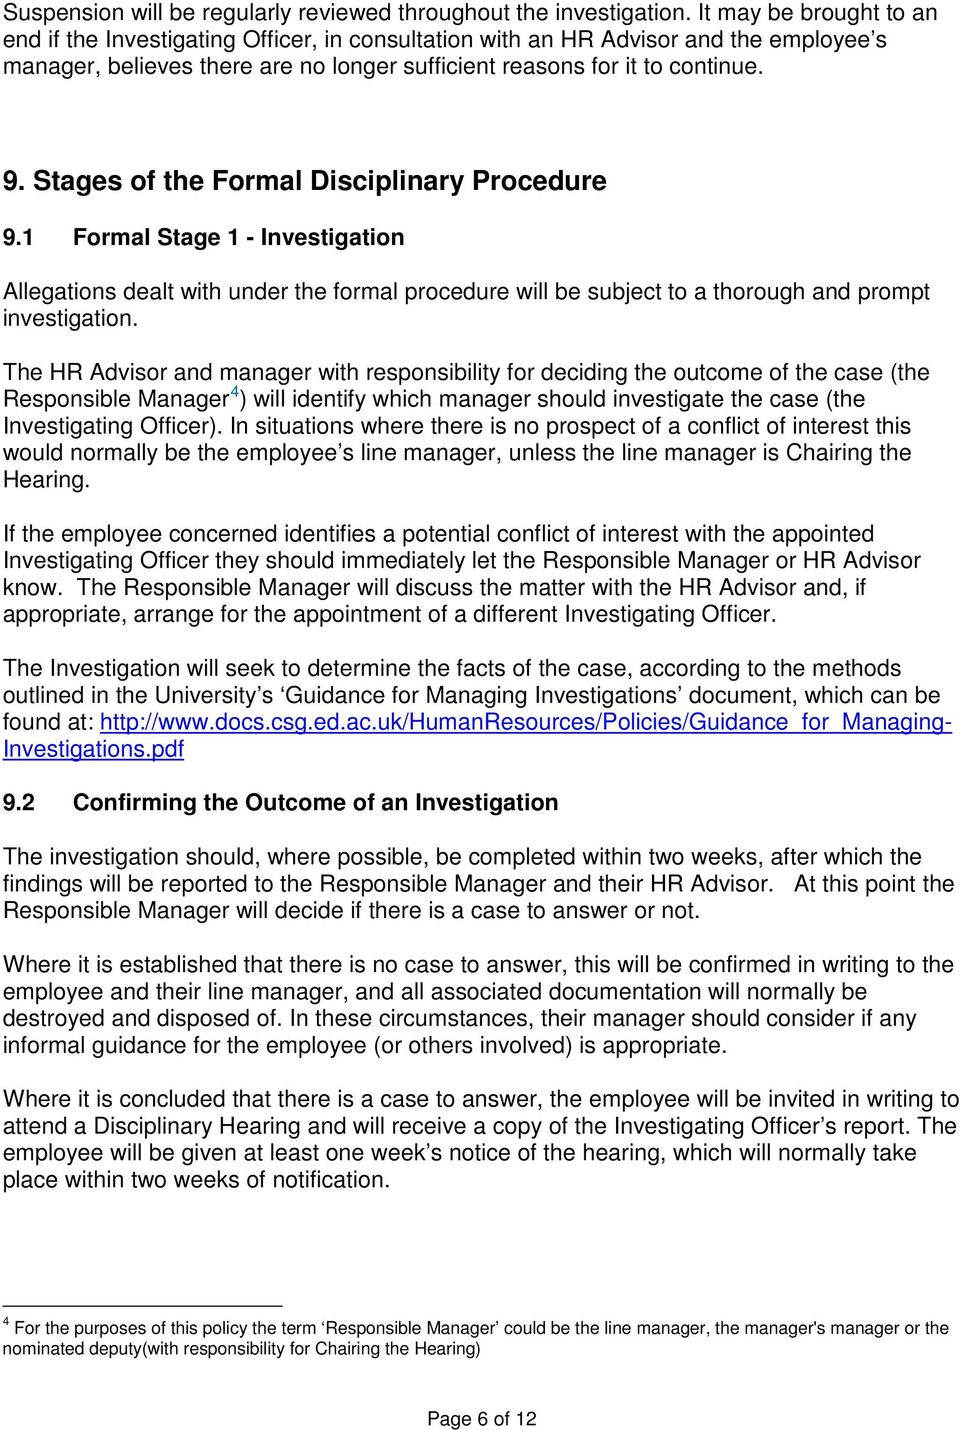 Stages of the Formal Disciplinary Procedure 9.1 Formal Stage 1 - Investigation Allegations dealt with under the formal procedure will be subject to a thorough and prompt investigation.